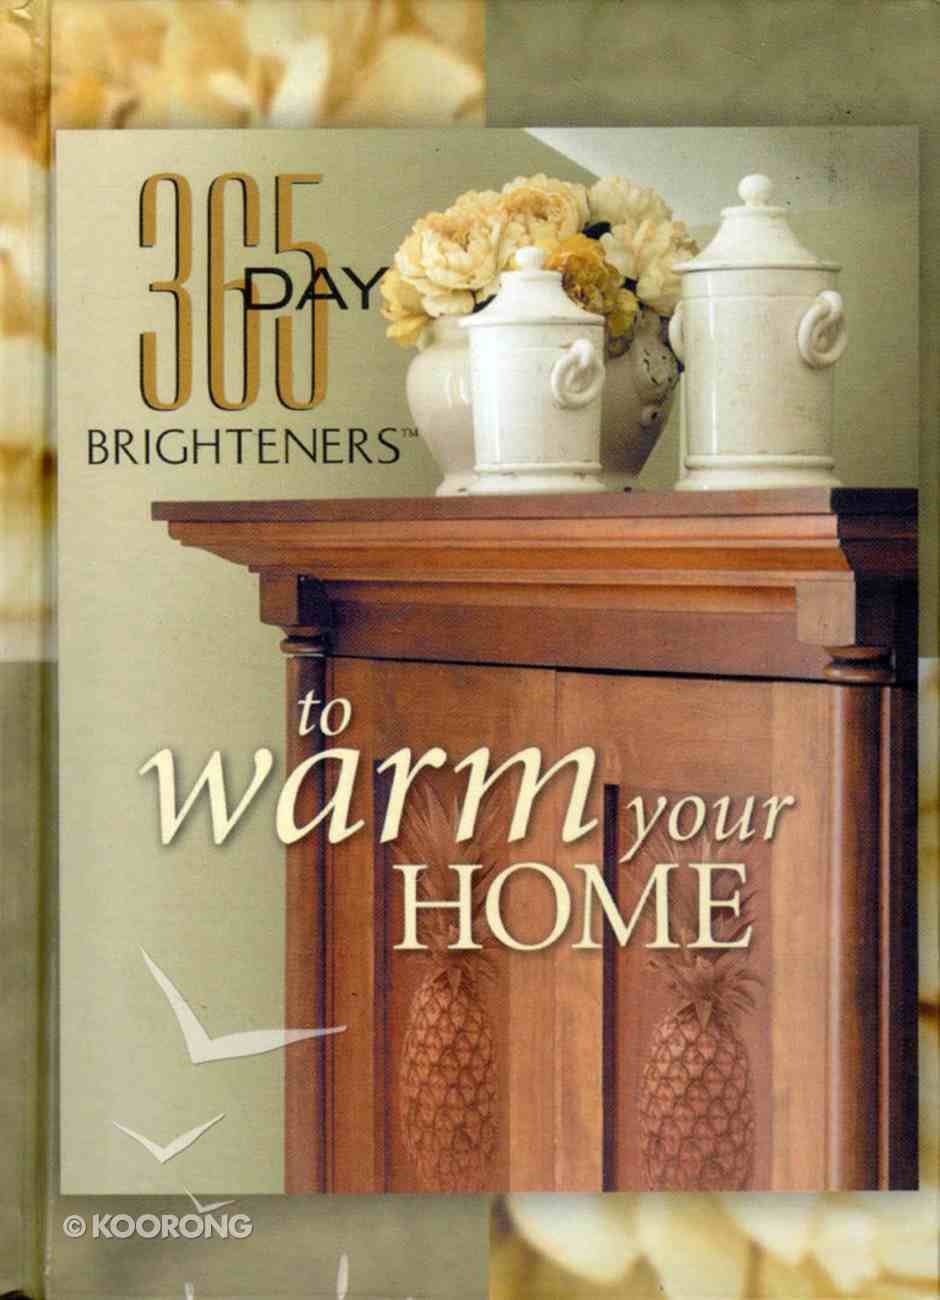 To Warm Your Home (365 Day Brighteners Series) Hardback